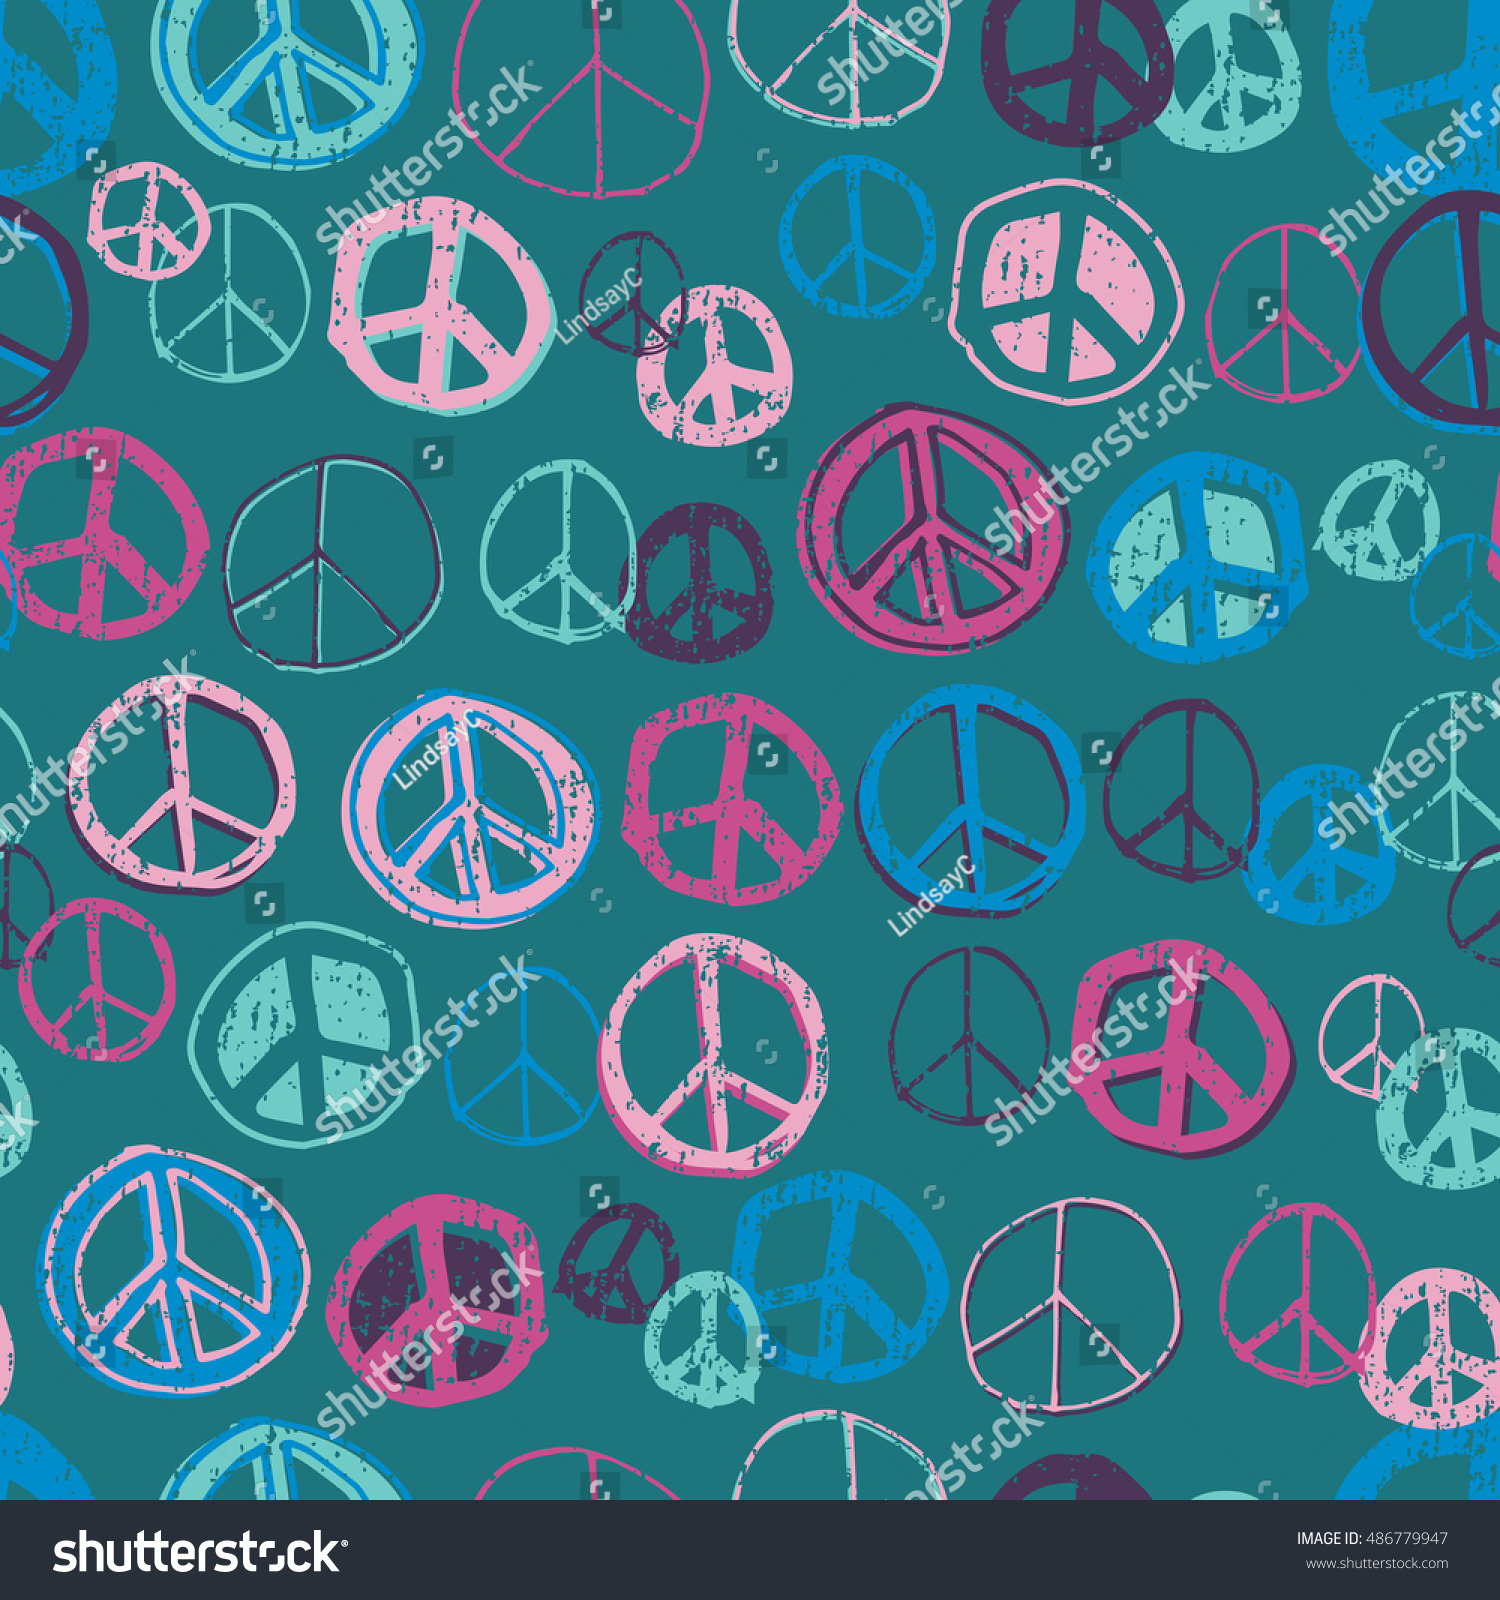 Fun Cute Hand Doodled Peace Sign Stock Vector (Royalty Free ...